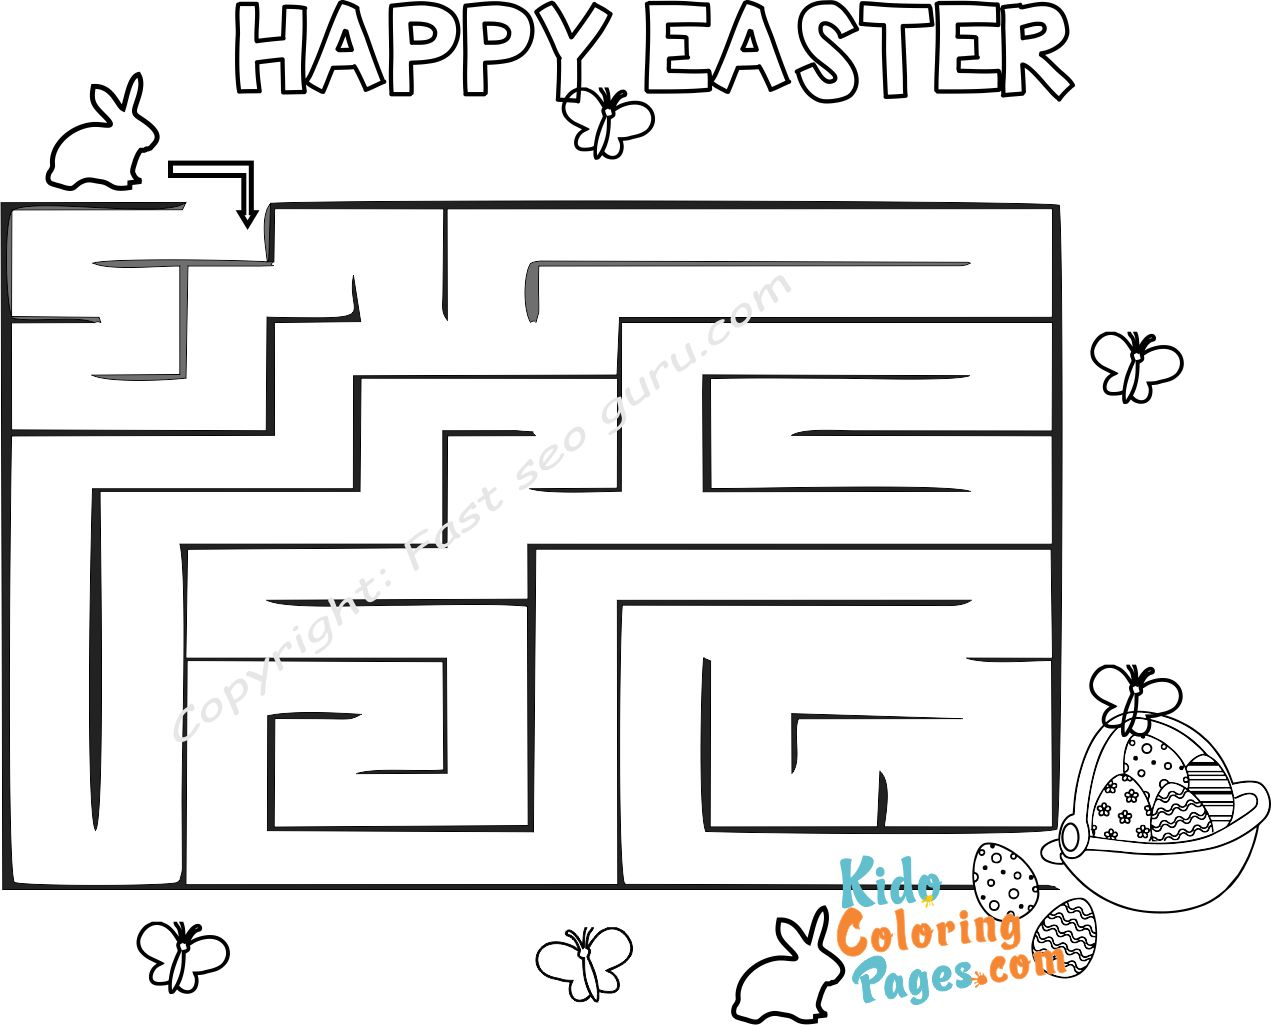 Easy easter maze puzzles printable